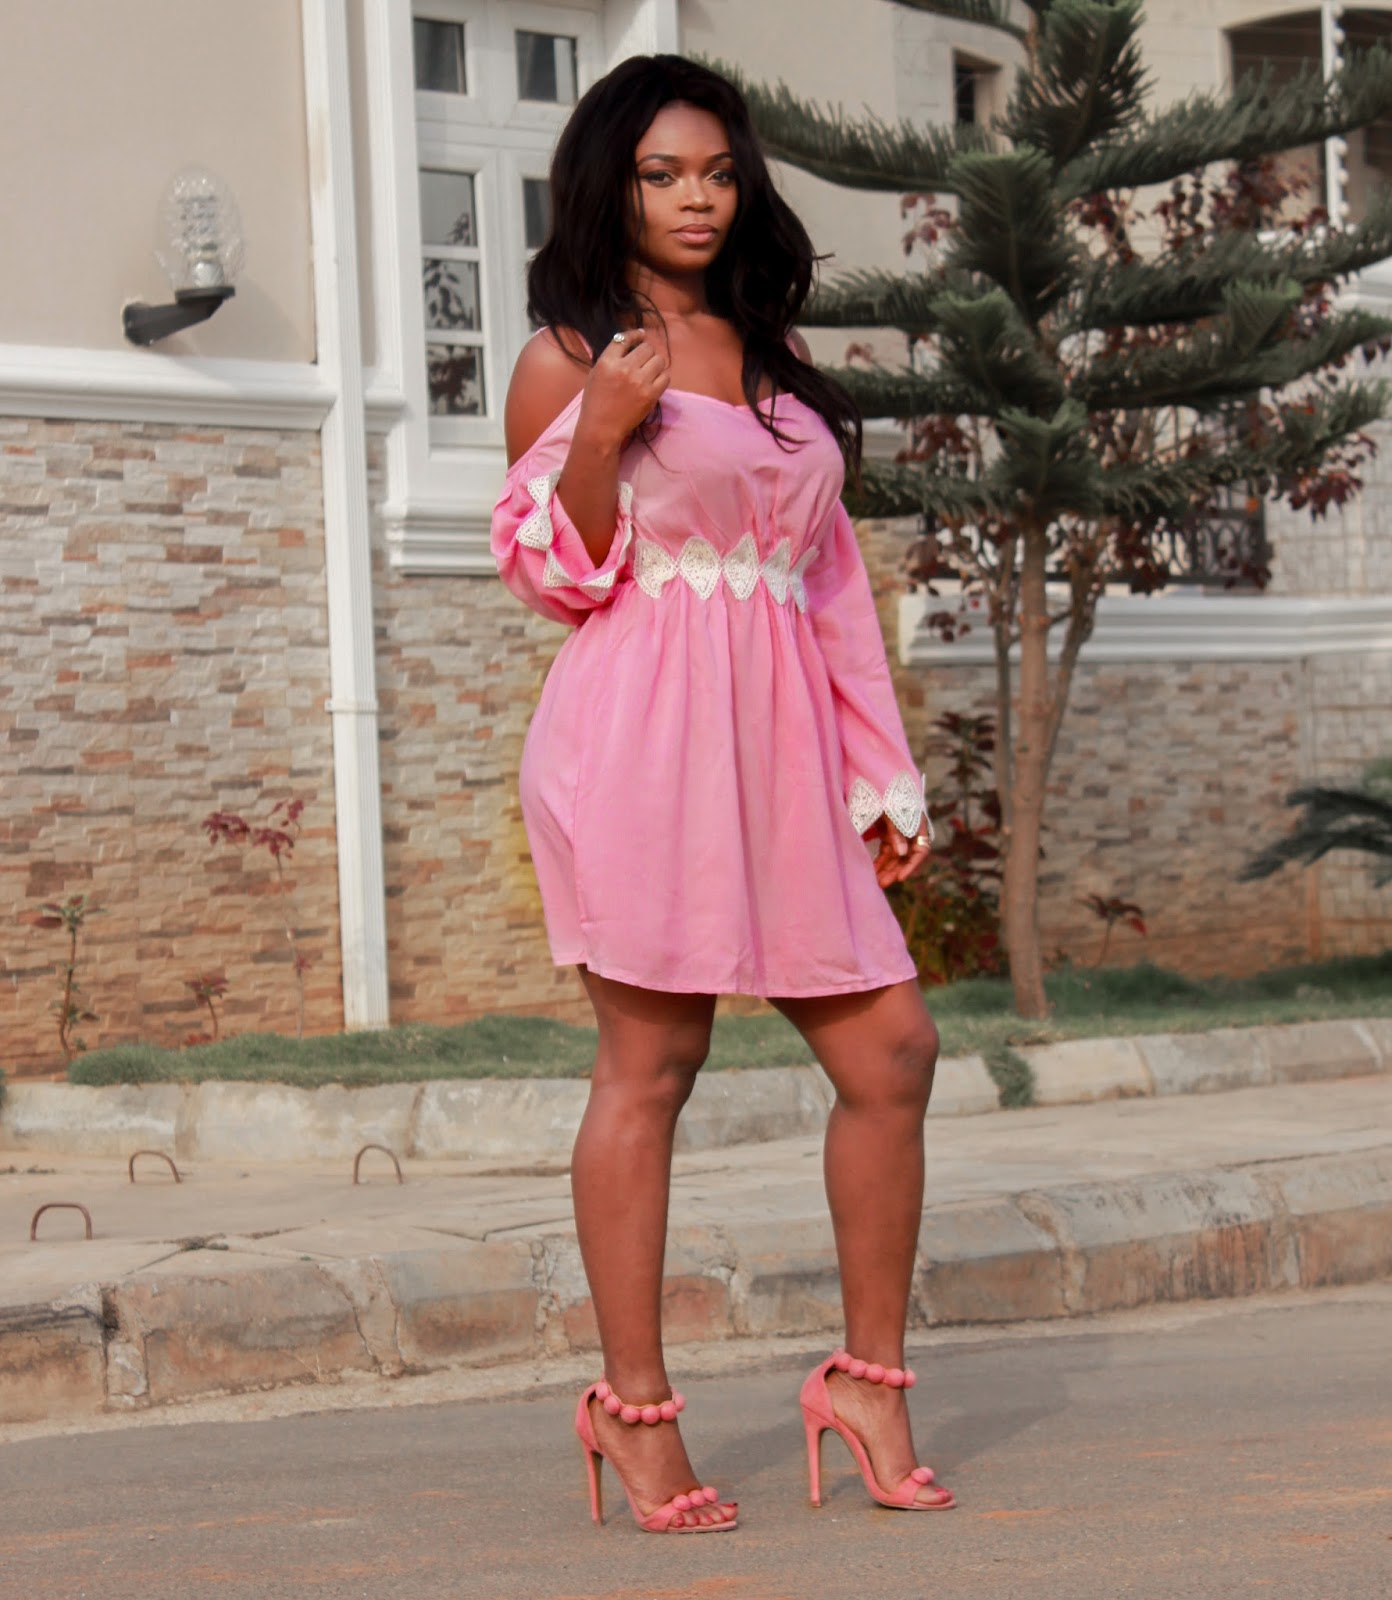 COLD SHOULDER DRESS - Pink Cold Shoulder Lace Spliced Dress from Zaful with Pink Sandals from Boohoo